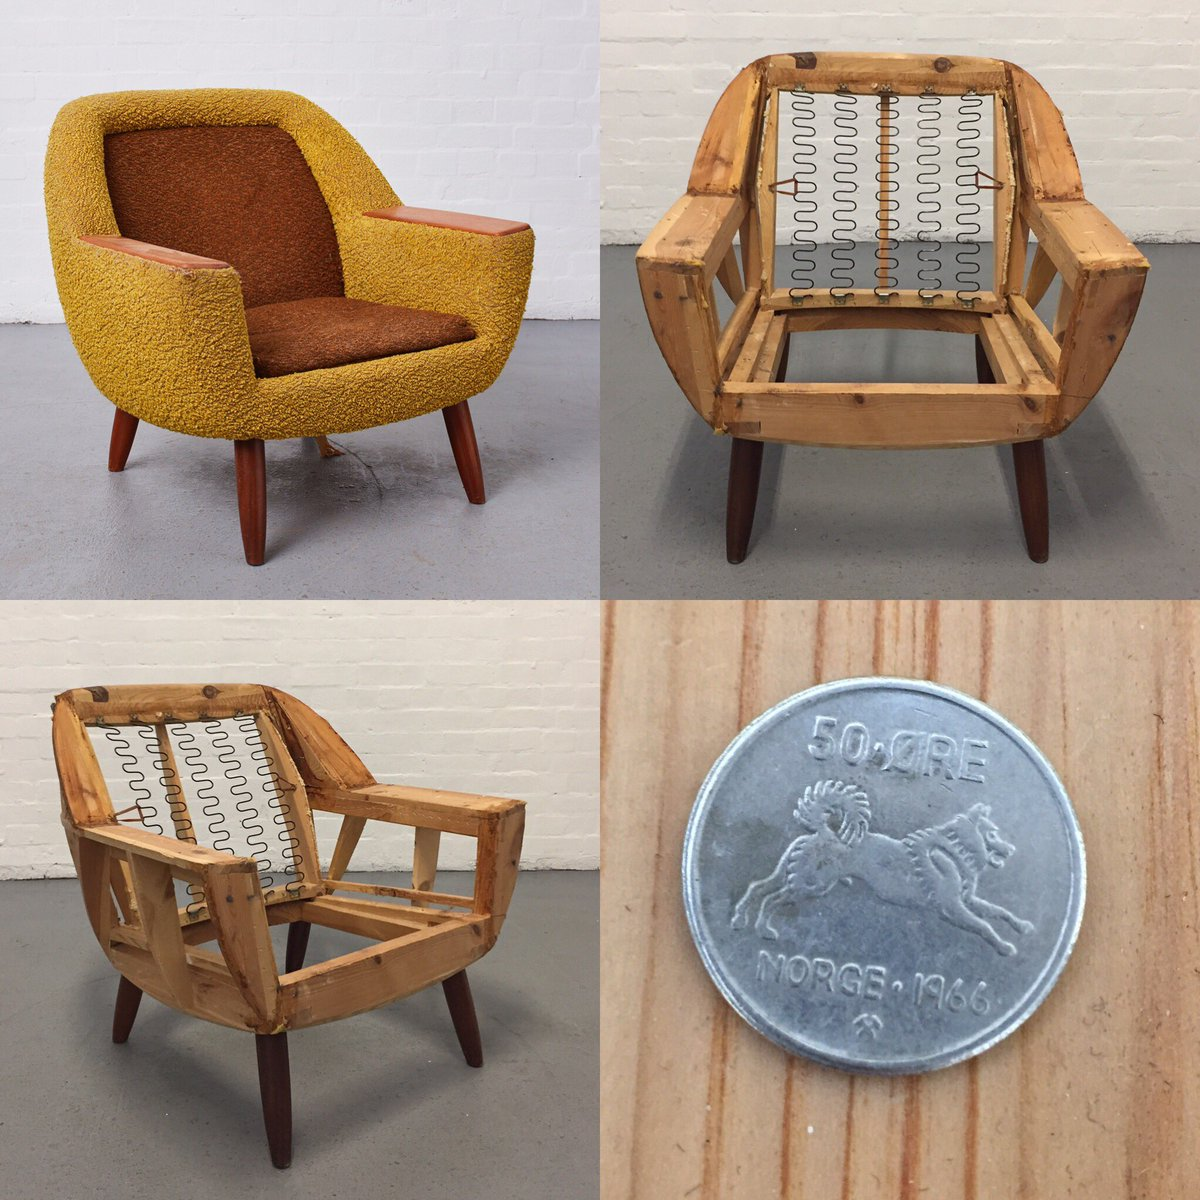 I've just finished stripping this chair & found a 1966 coin from Norway - Norwegian cocktail chair? #vintagechairs #upholstery #Interiors pic.twitter.com/zQ87wpSWTz – at Artwork Atelier